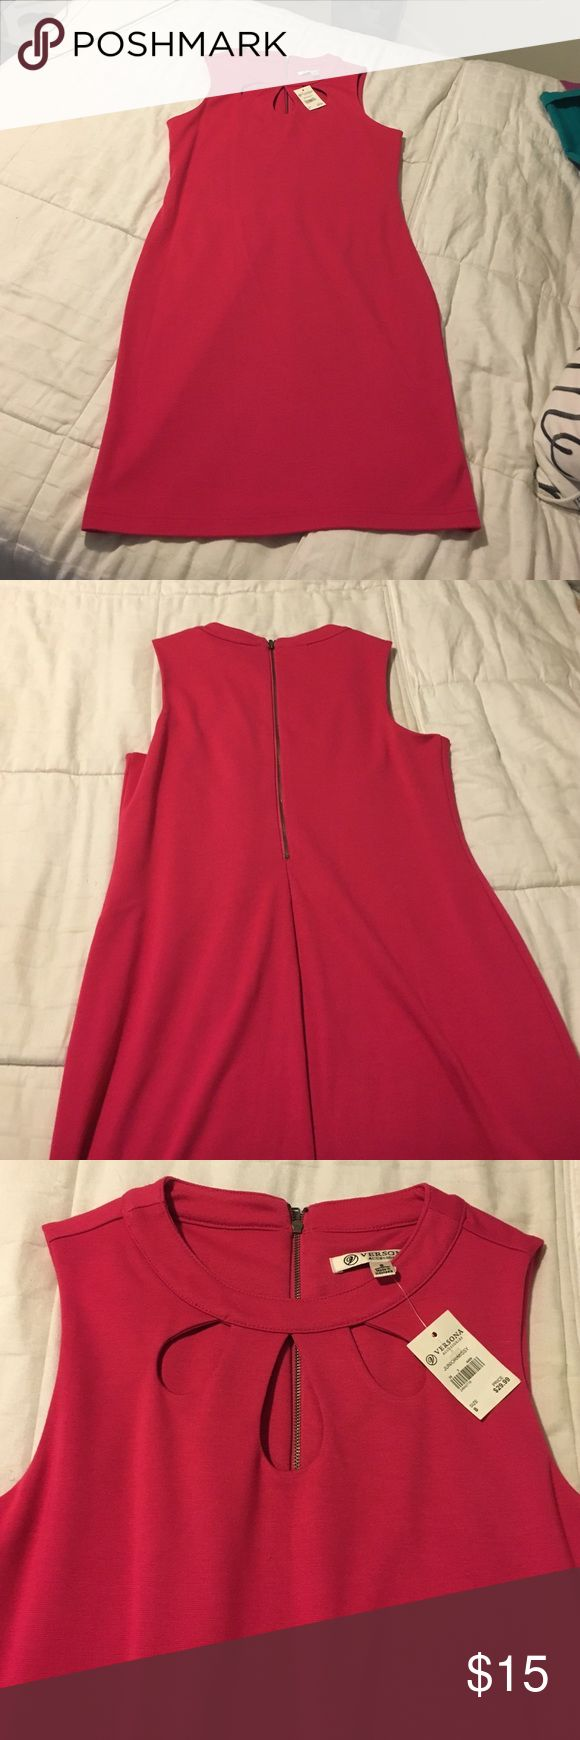 Pink bodycon dress Cute pink bodycon dress with teardrop front detail! New with tags! Versona Dresses Midi